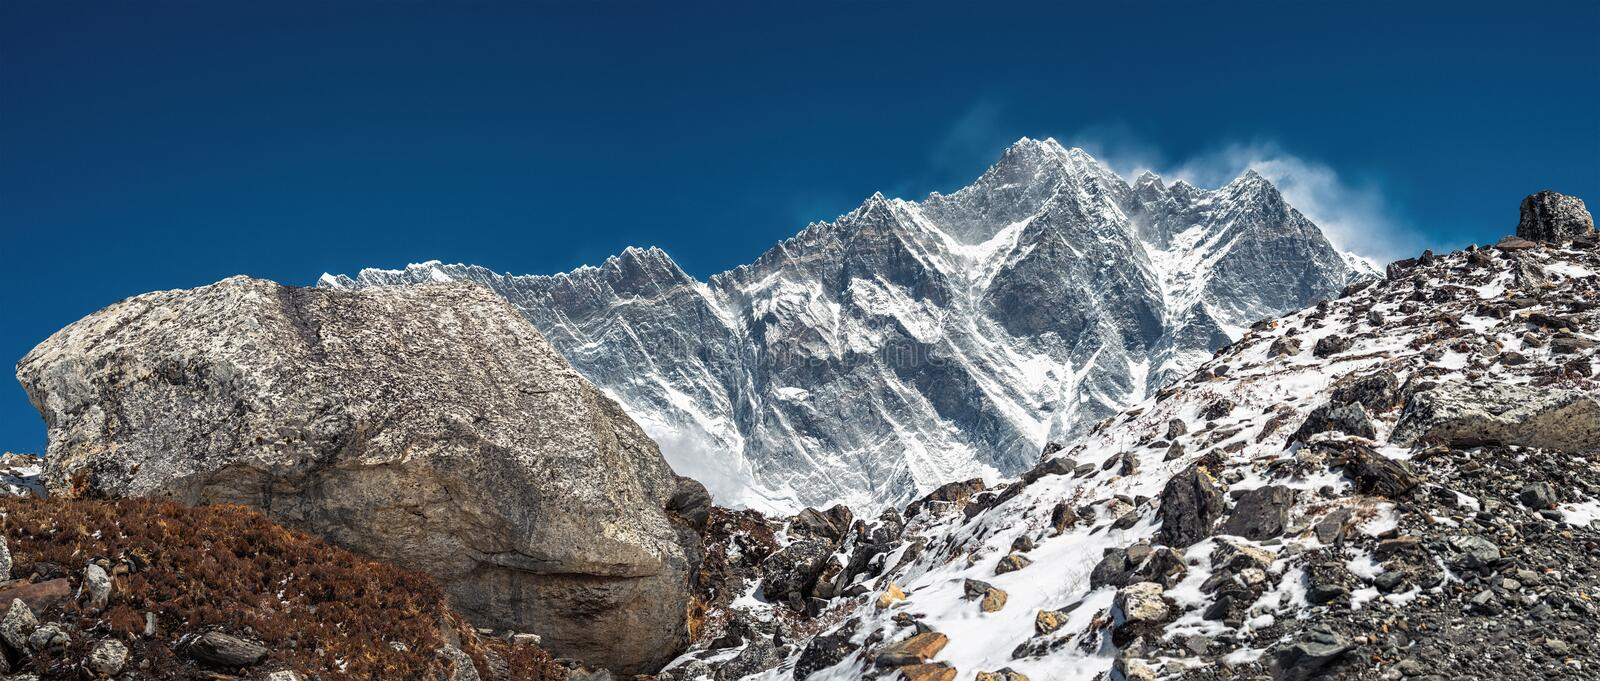 Lhotse is fourth highest mountain in world at 8,516m27,940 ft.Himalaya, Nepal royalty free stock image